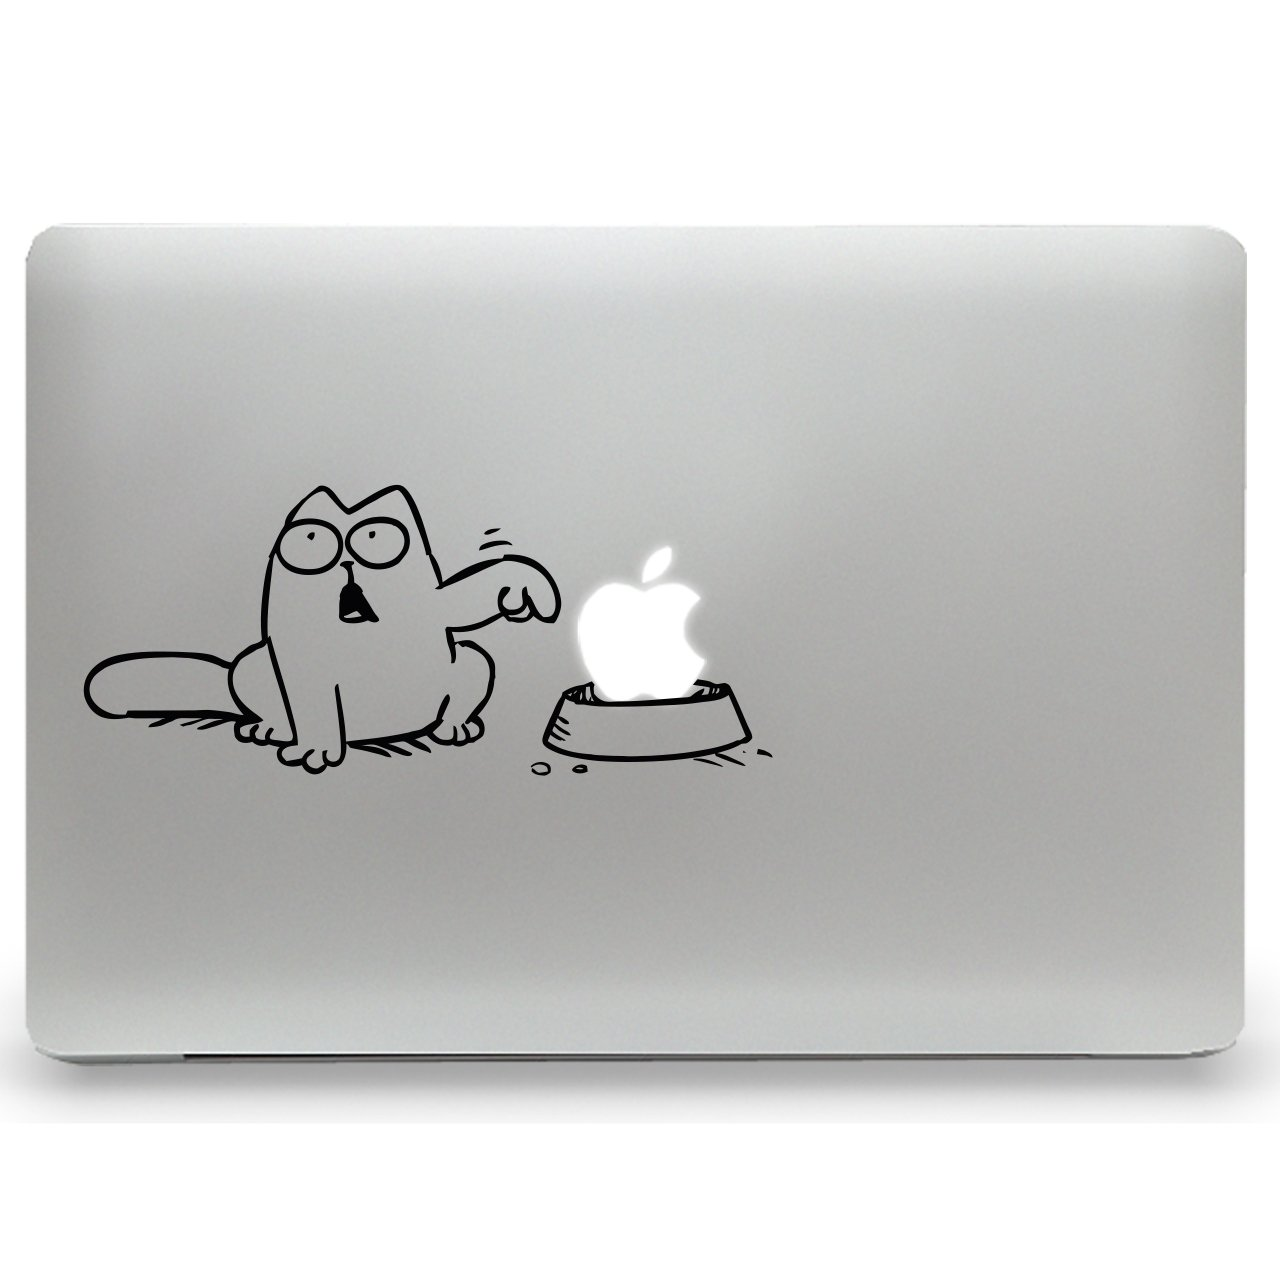 Simon's Cat - Aufkleber für MacBook Air und MacBook Pro